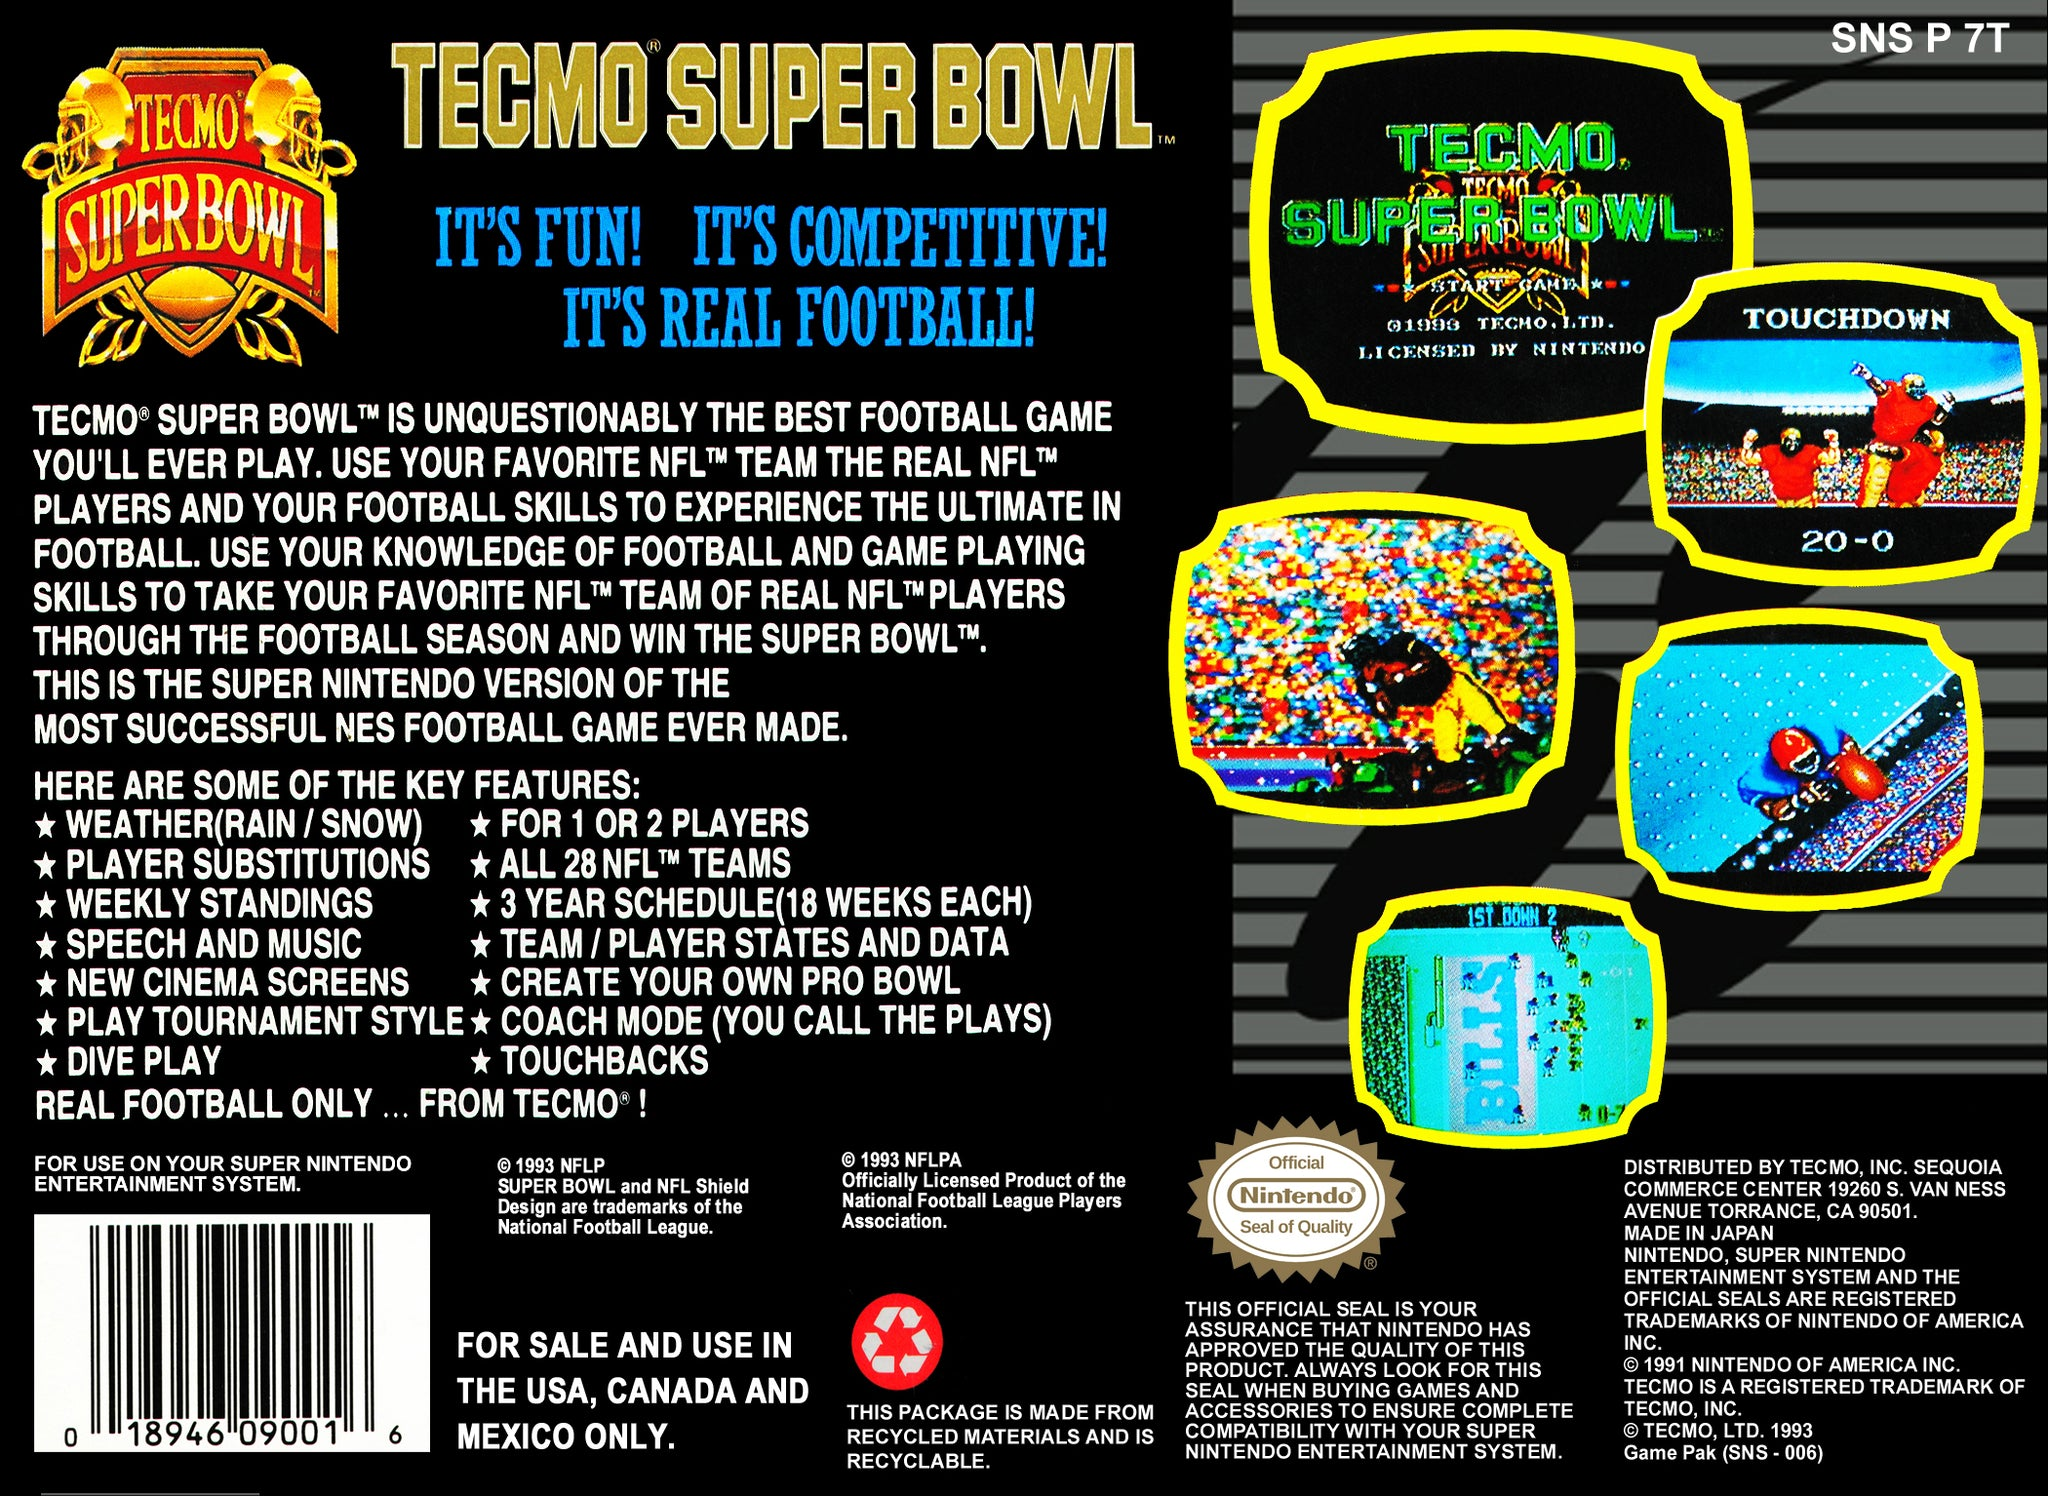 Tecmo Super Bowl - Super Nintendo (SNES) Game Cartridge